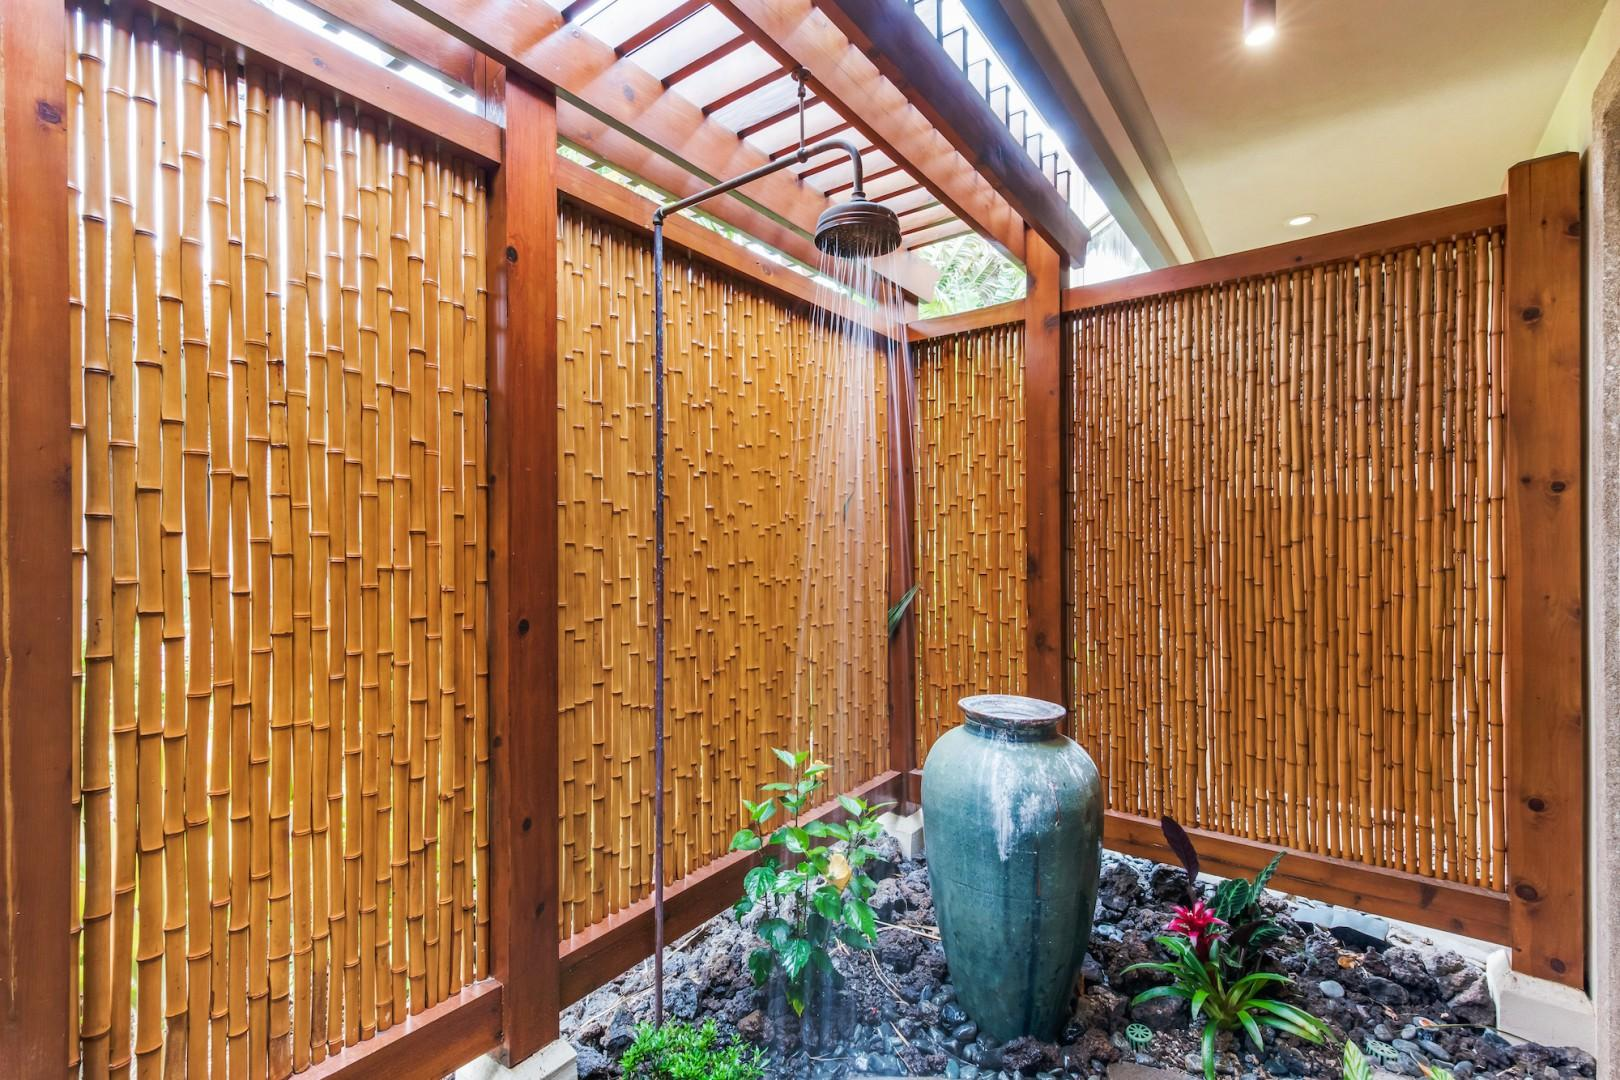 Bamboo Enclosed Outdoor Shower Off Master Bath, a Tropical Treat!